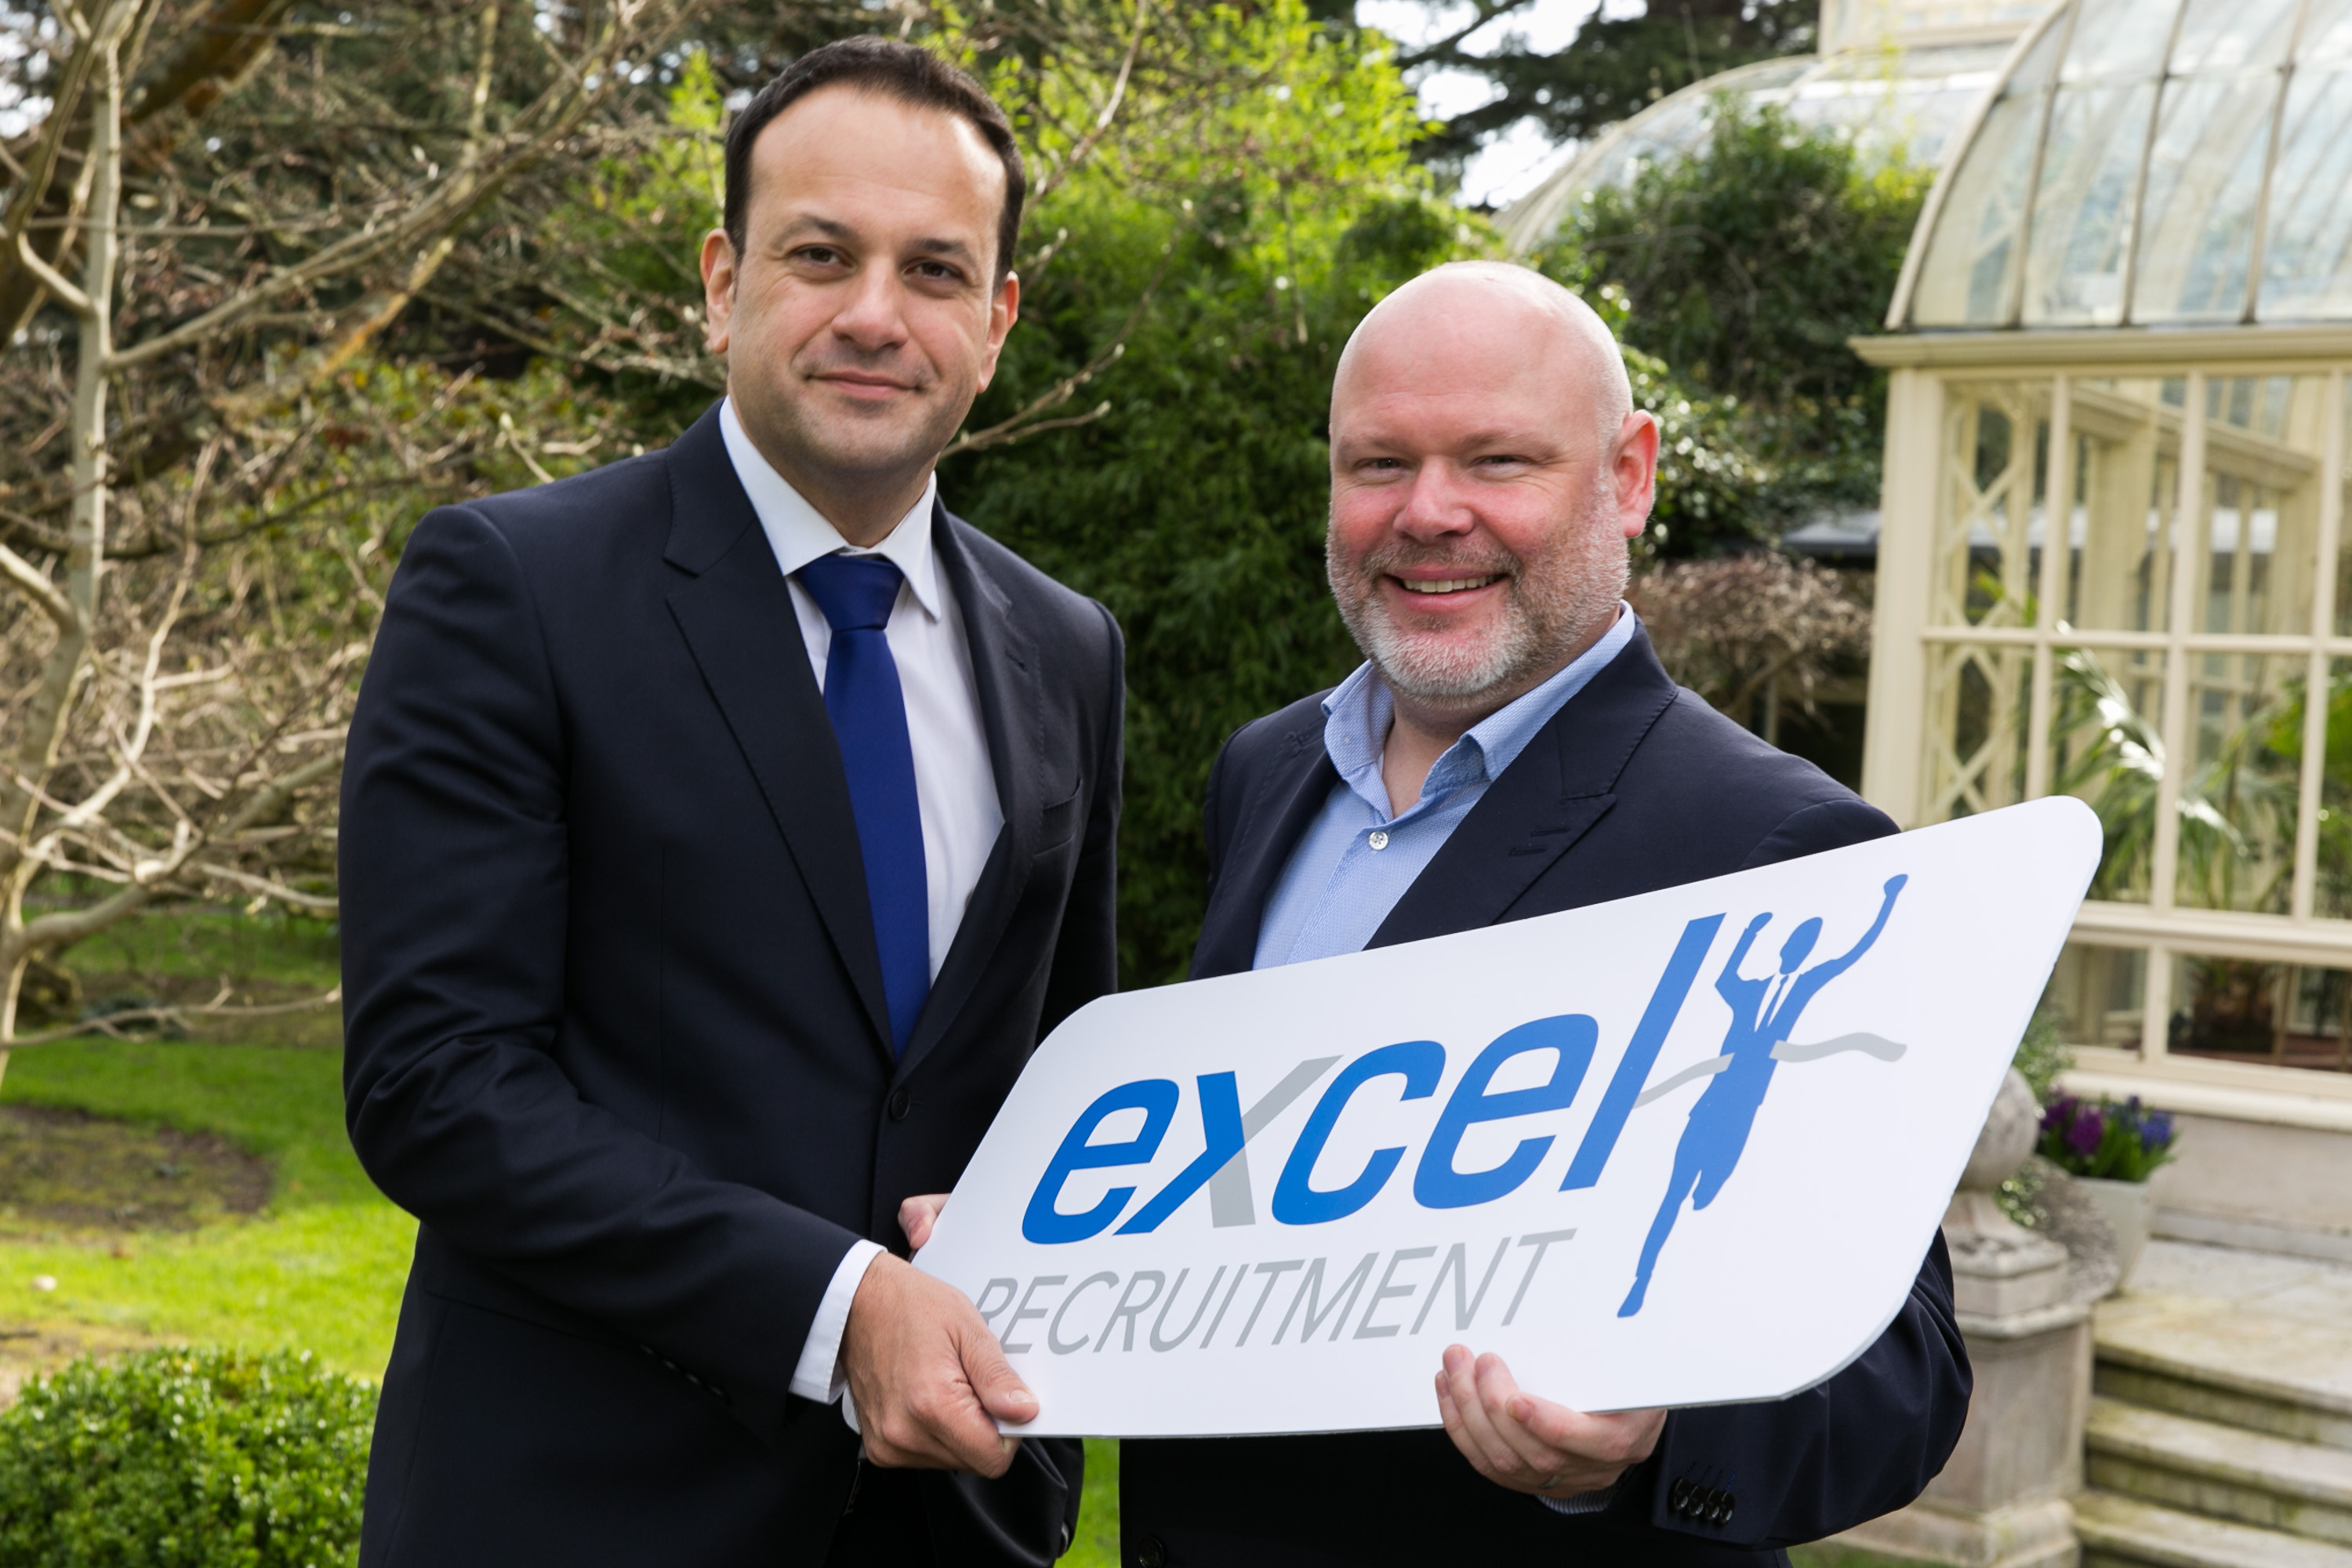 Feeding Ireland's Future 2017.  Pictured is Minister for Social Protection, Leo Minister Varadkar, T.D. and Barry Whelan, Excel Recruitment. Picture by Shane O'Neill Photography.